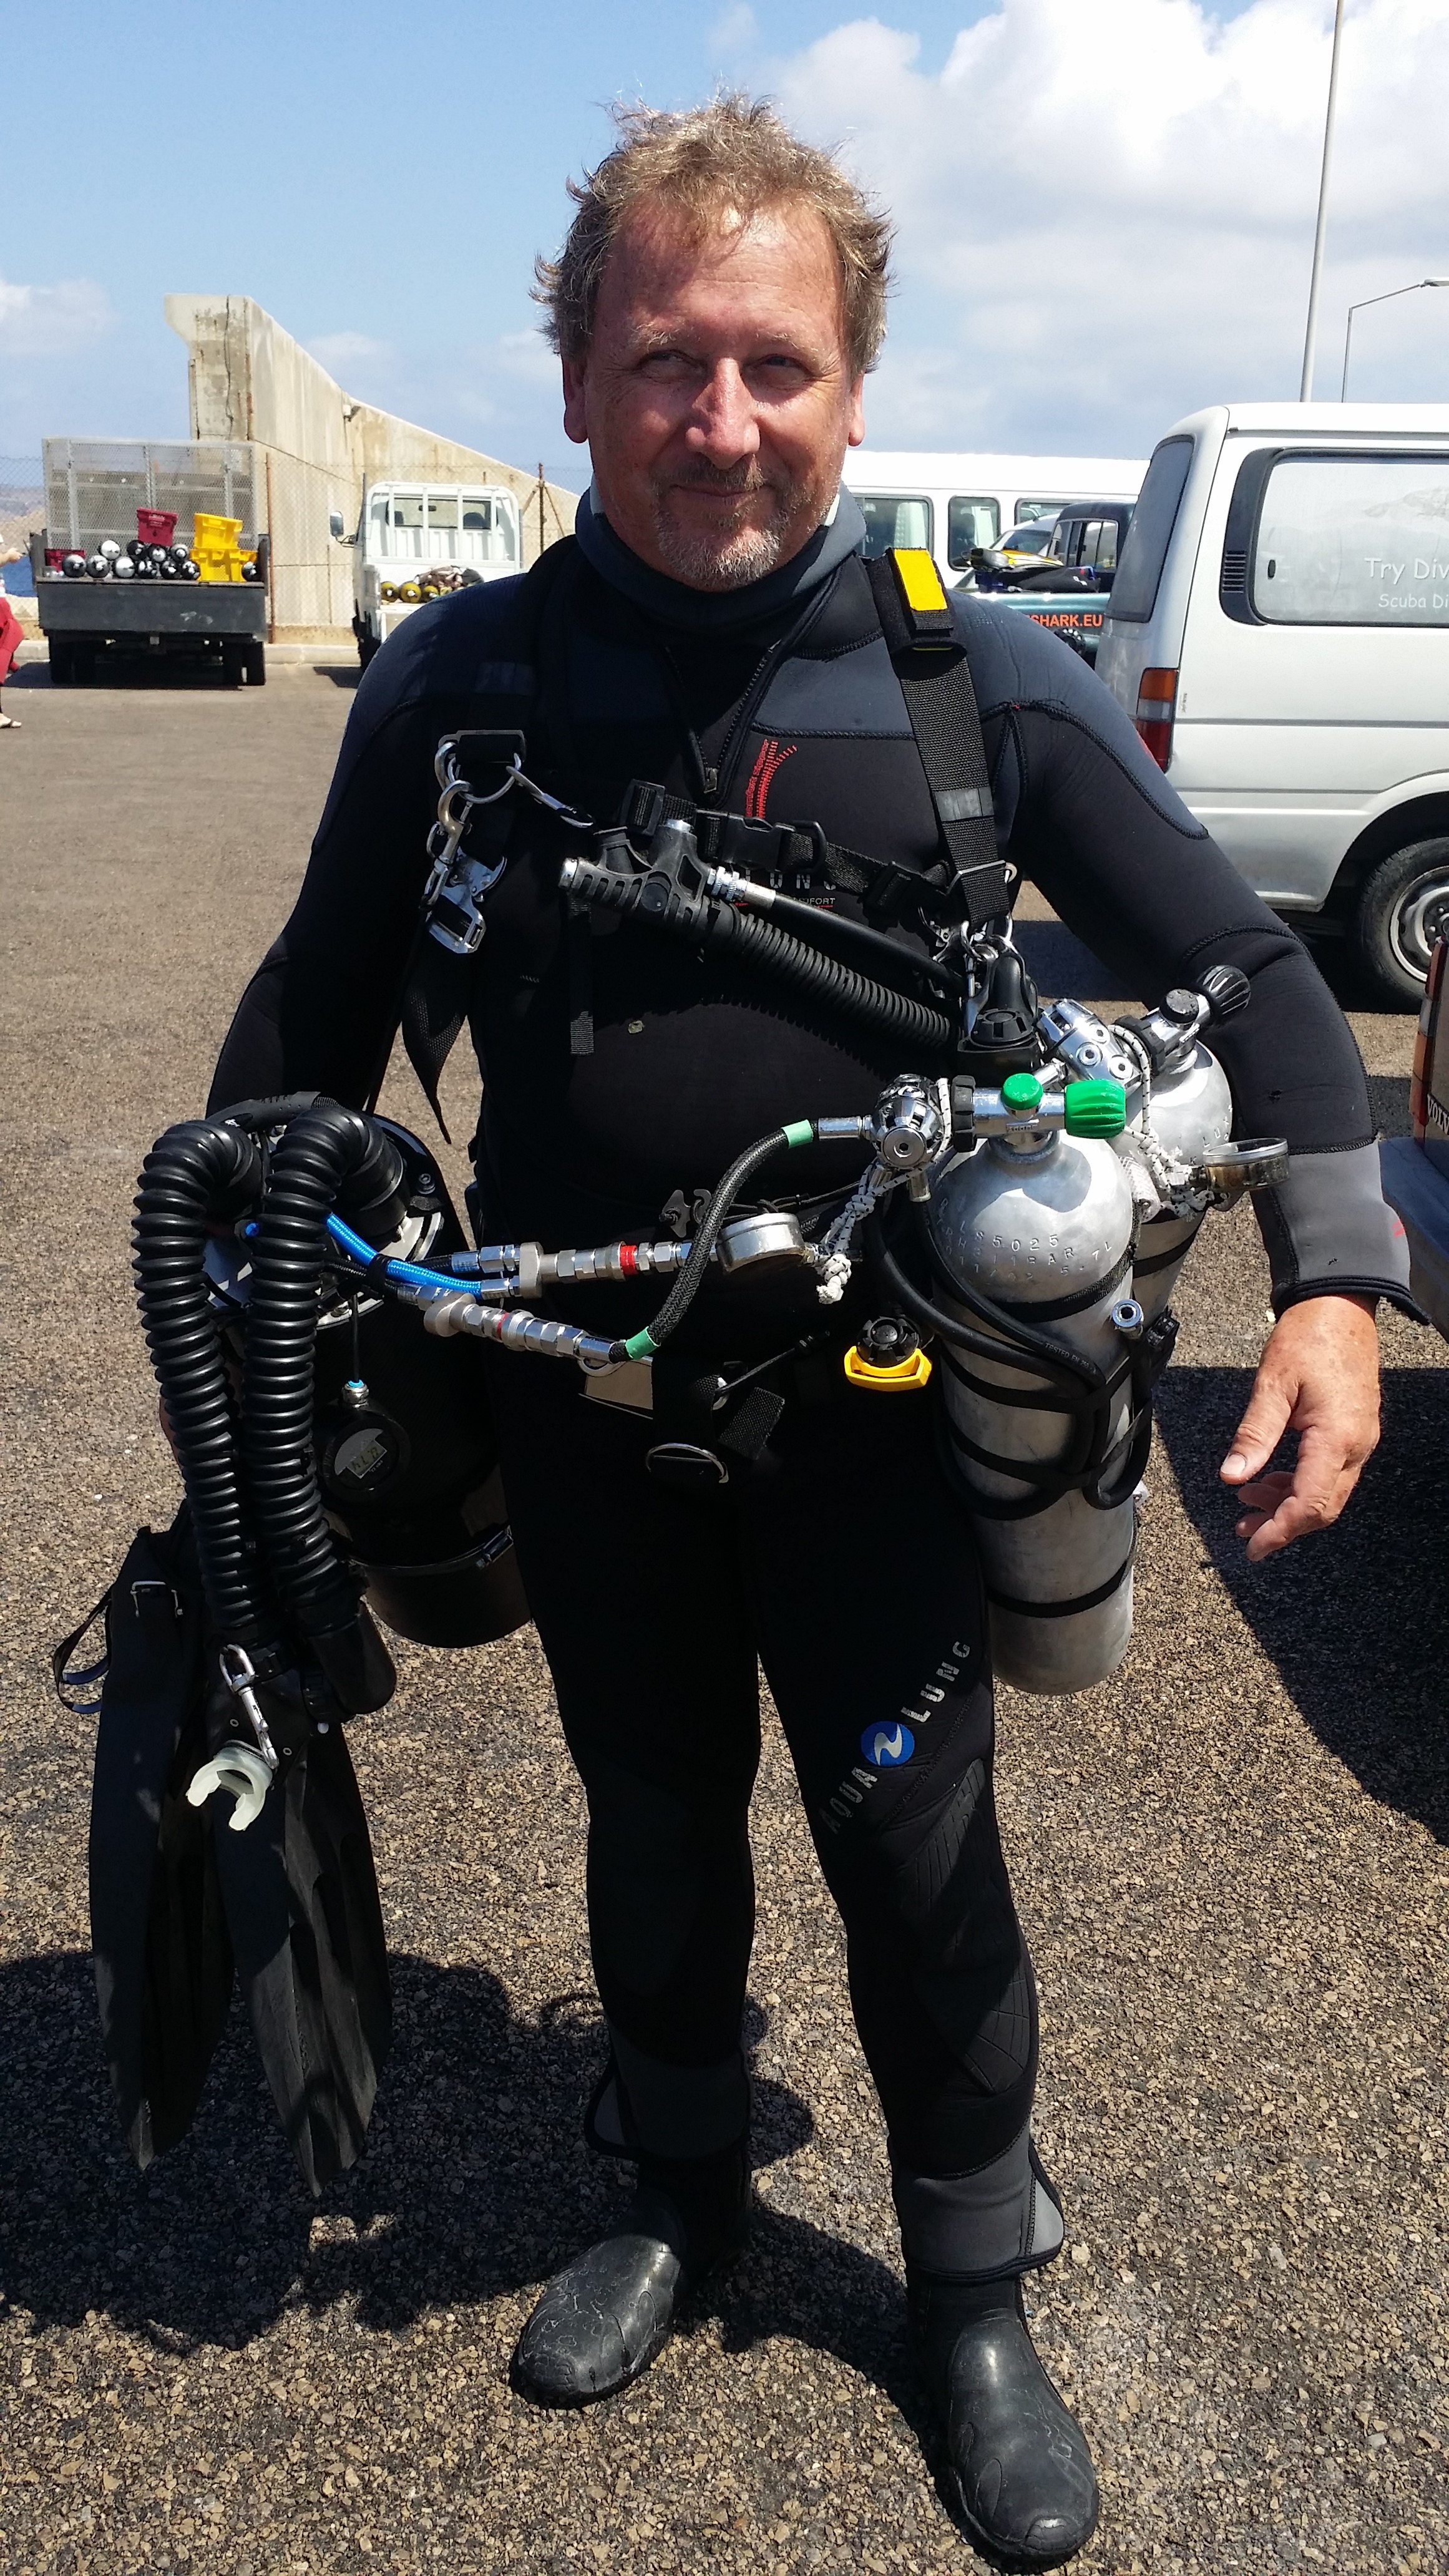 Dive-Systems-Proteus-P2-Sidemount-Rebreather--20160813-02.jpg